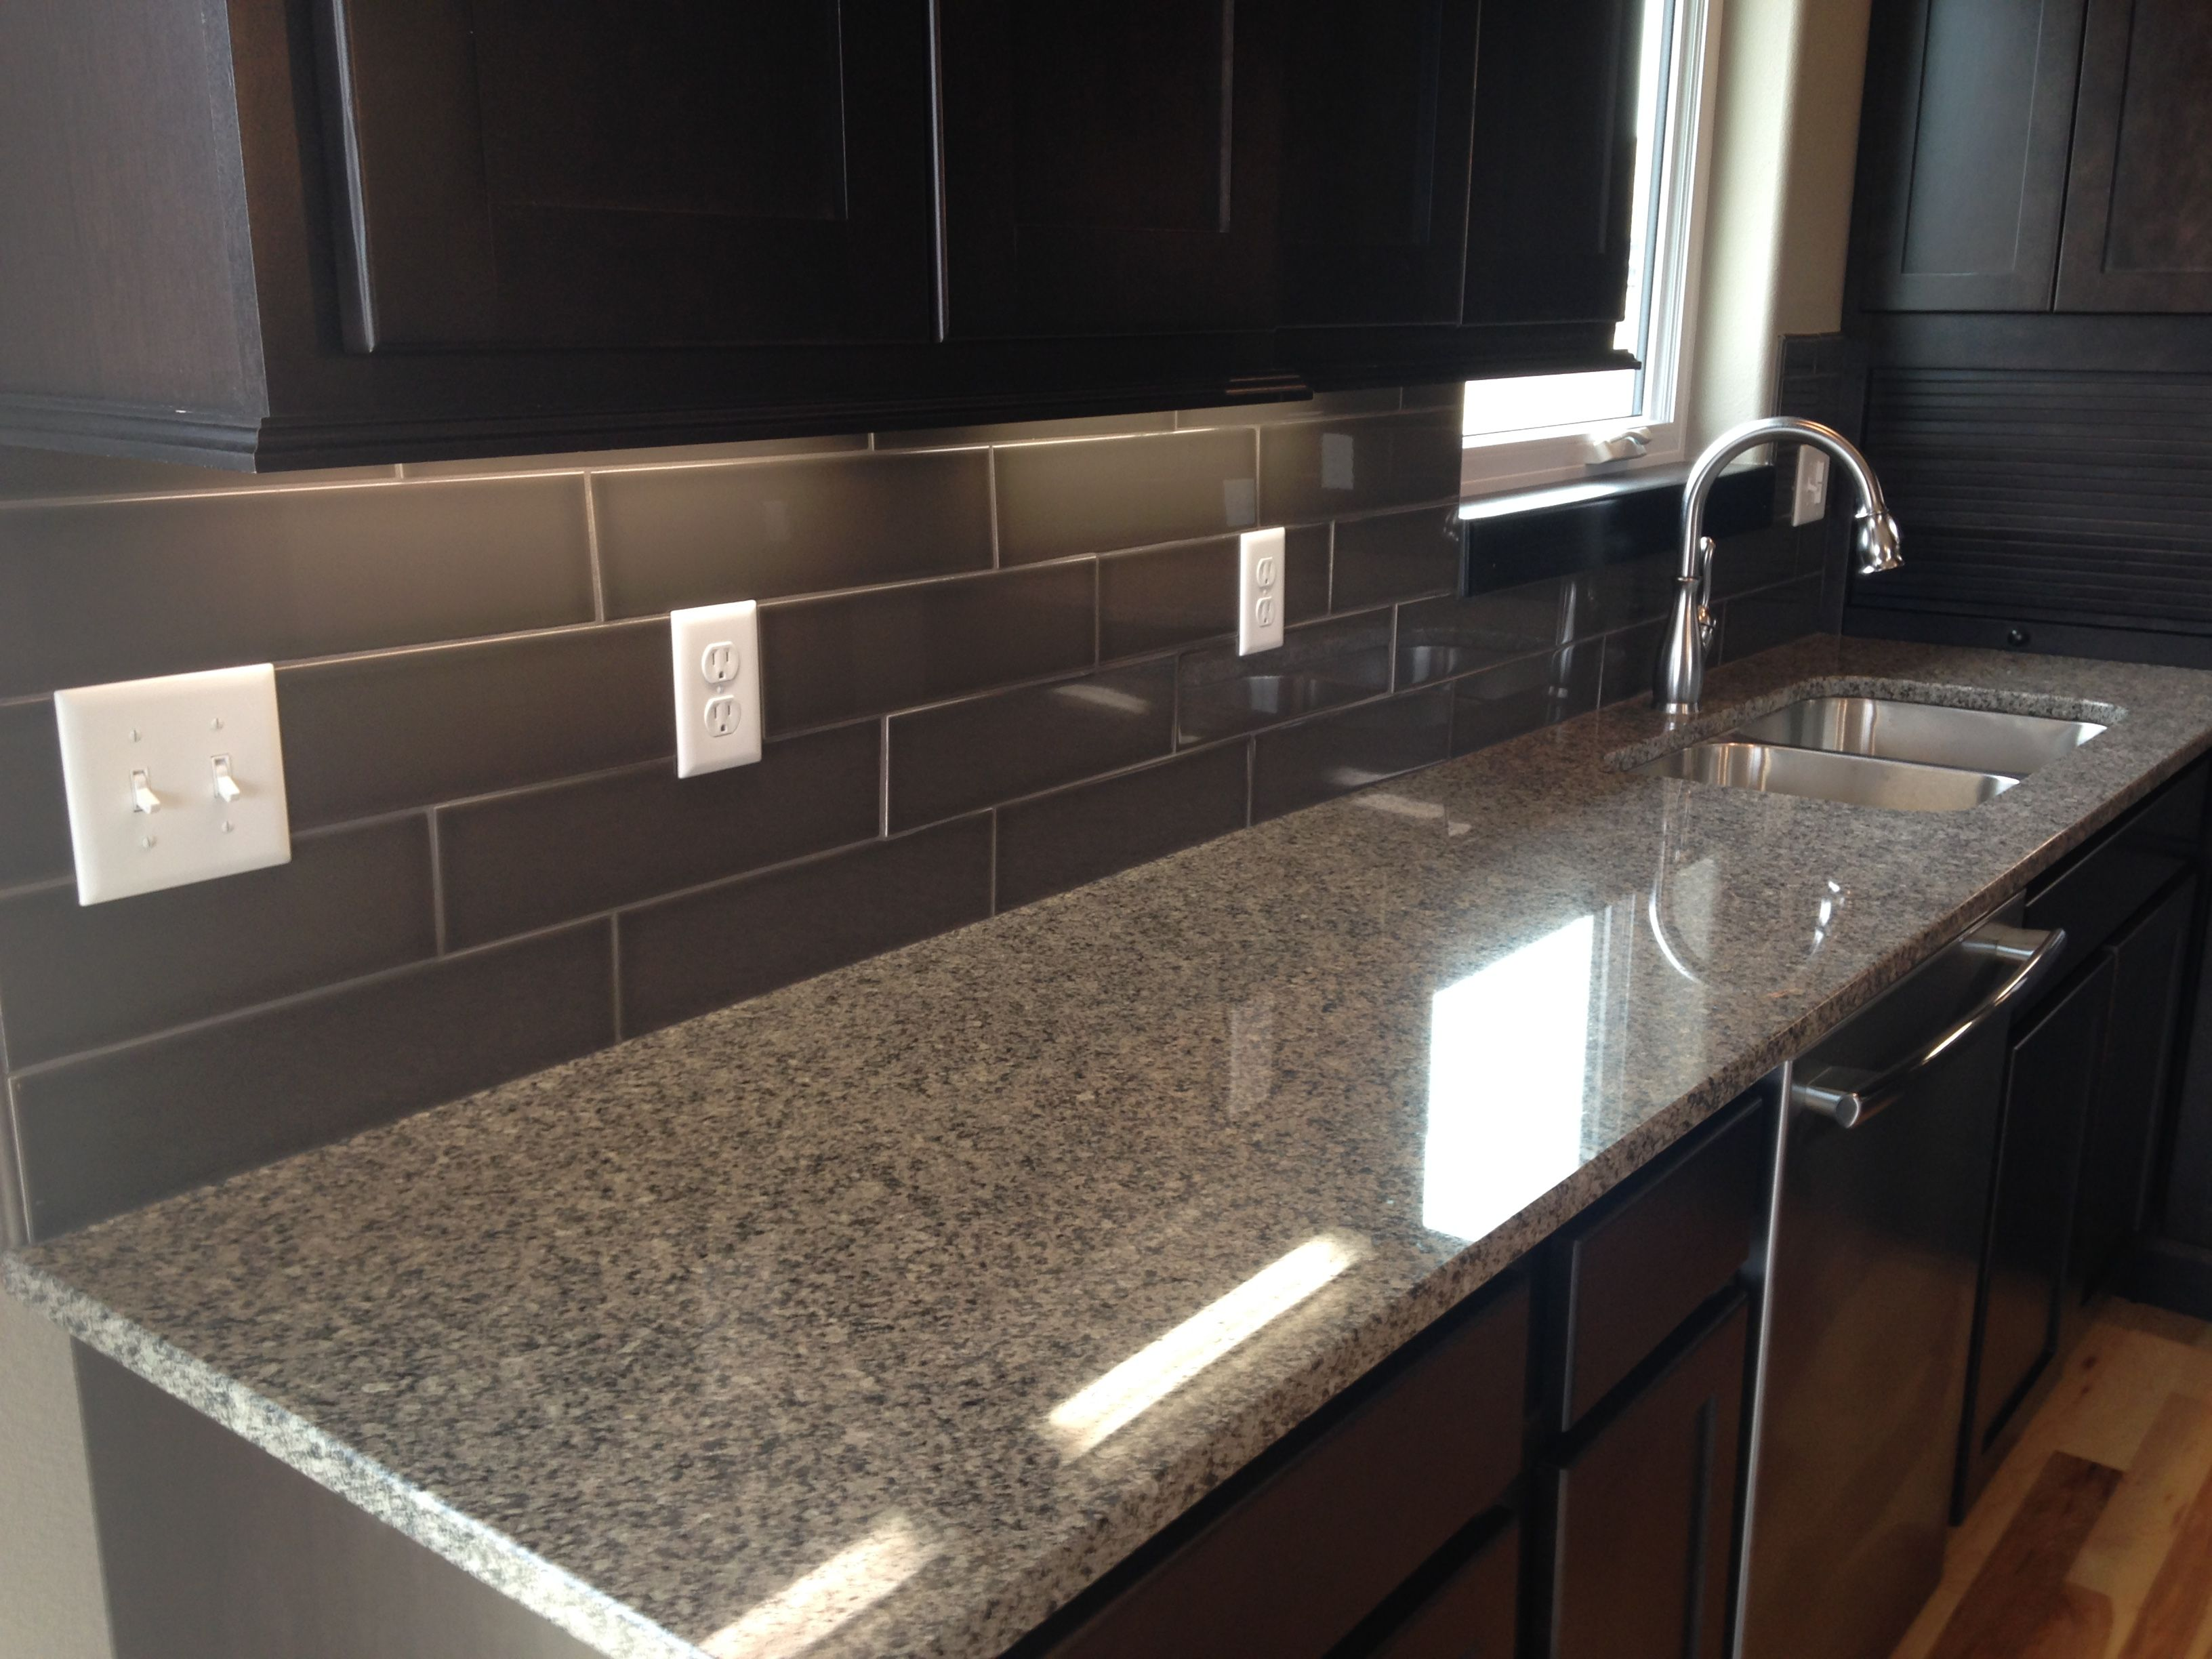 Kitchen backsplash in a 4x16 dark subway style tile